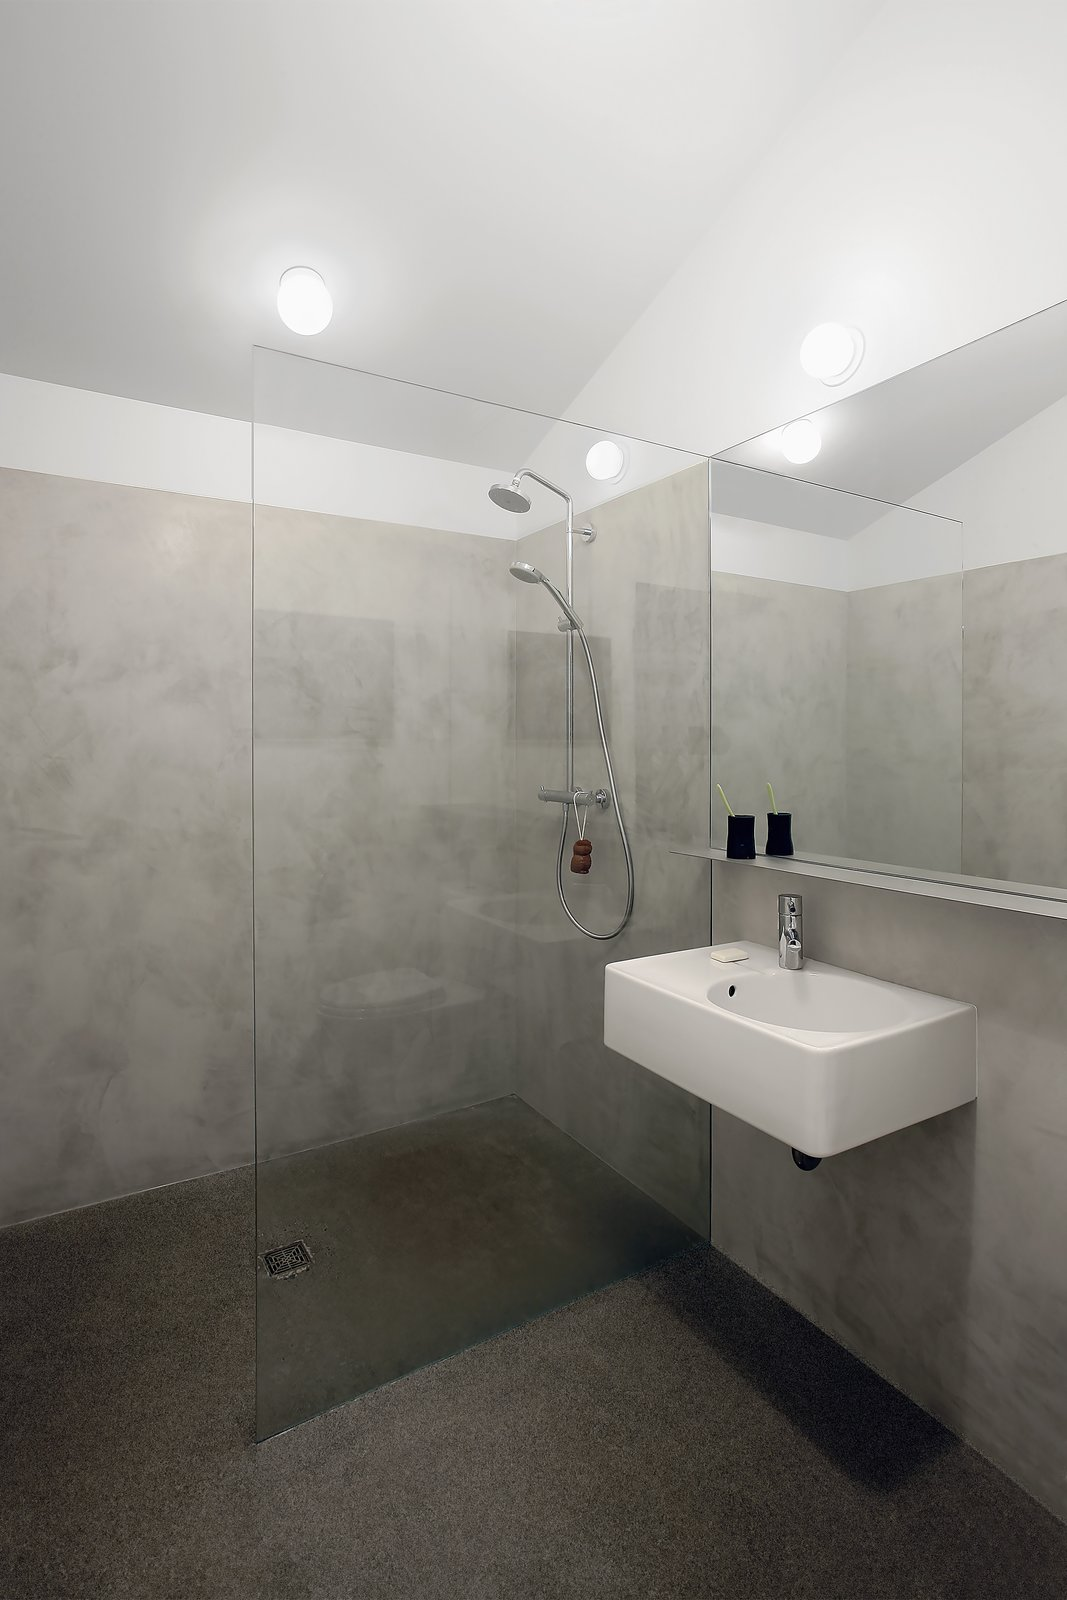 Bath, Wall Mount, Open, Concrete, and Concrete A clean and simple bathroom add to the modern feel of the space.   Bath Concrete Concrete Photos from Stable Conversion